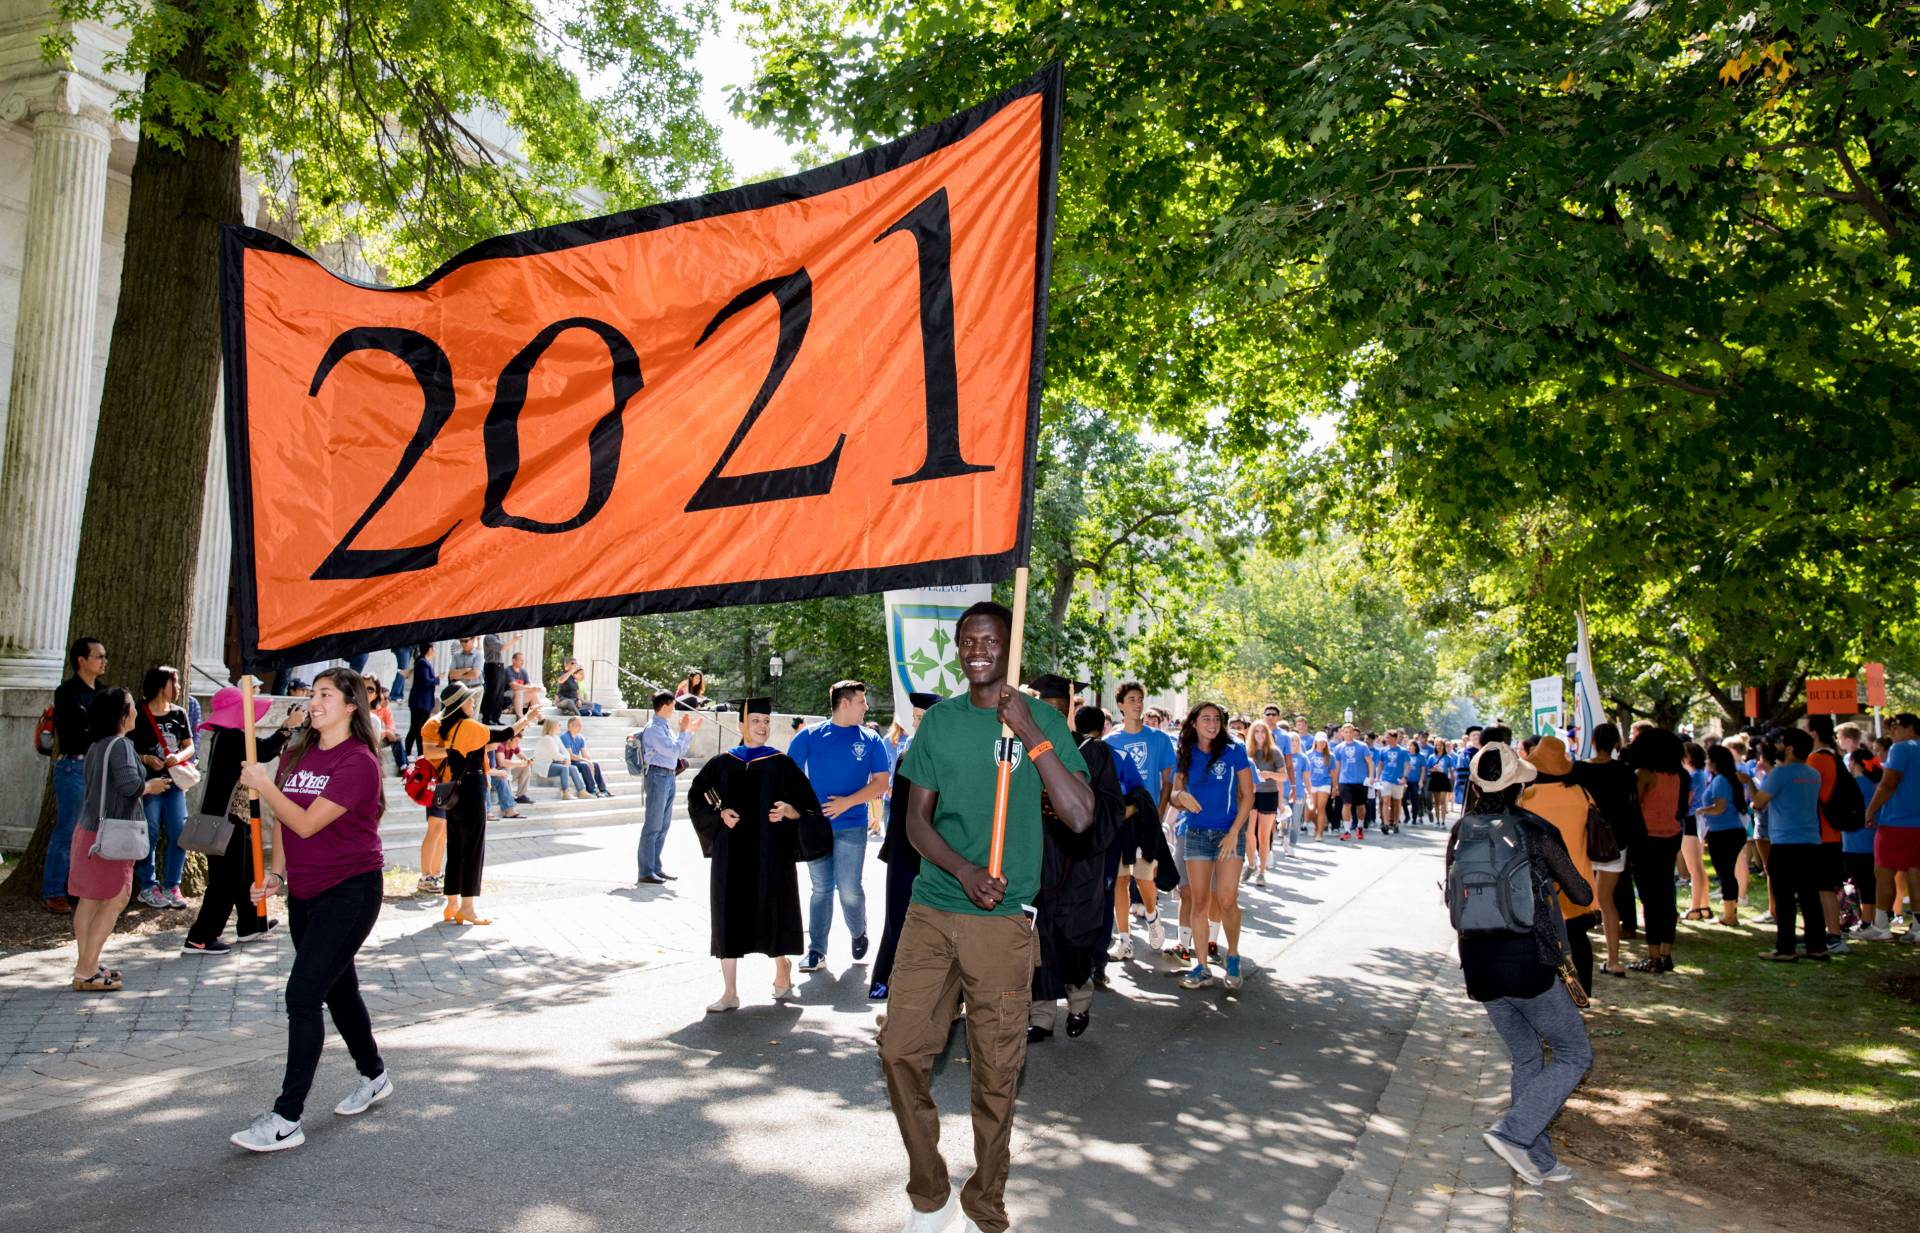 Students carry 2021 banner